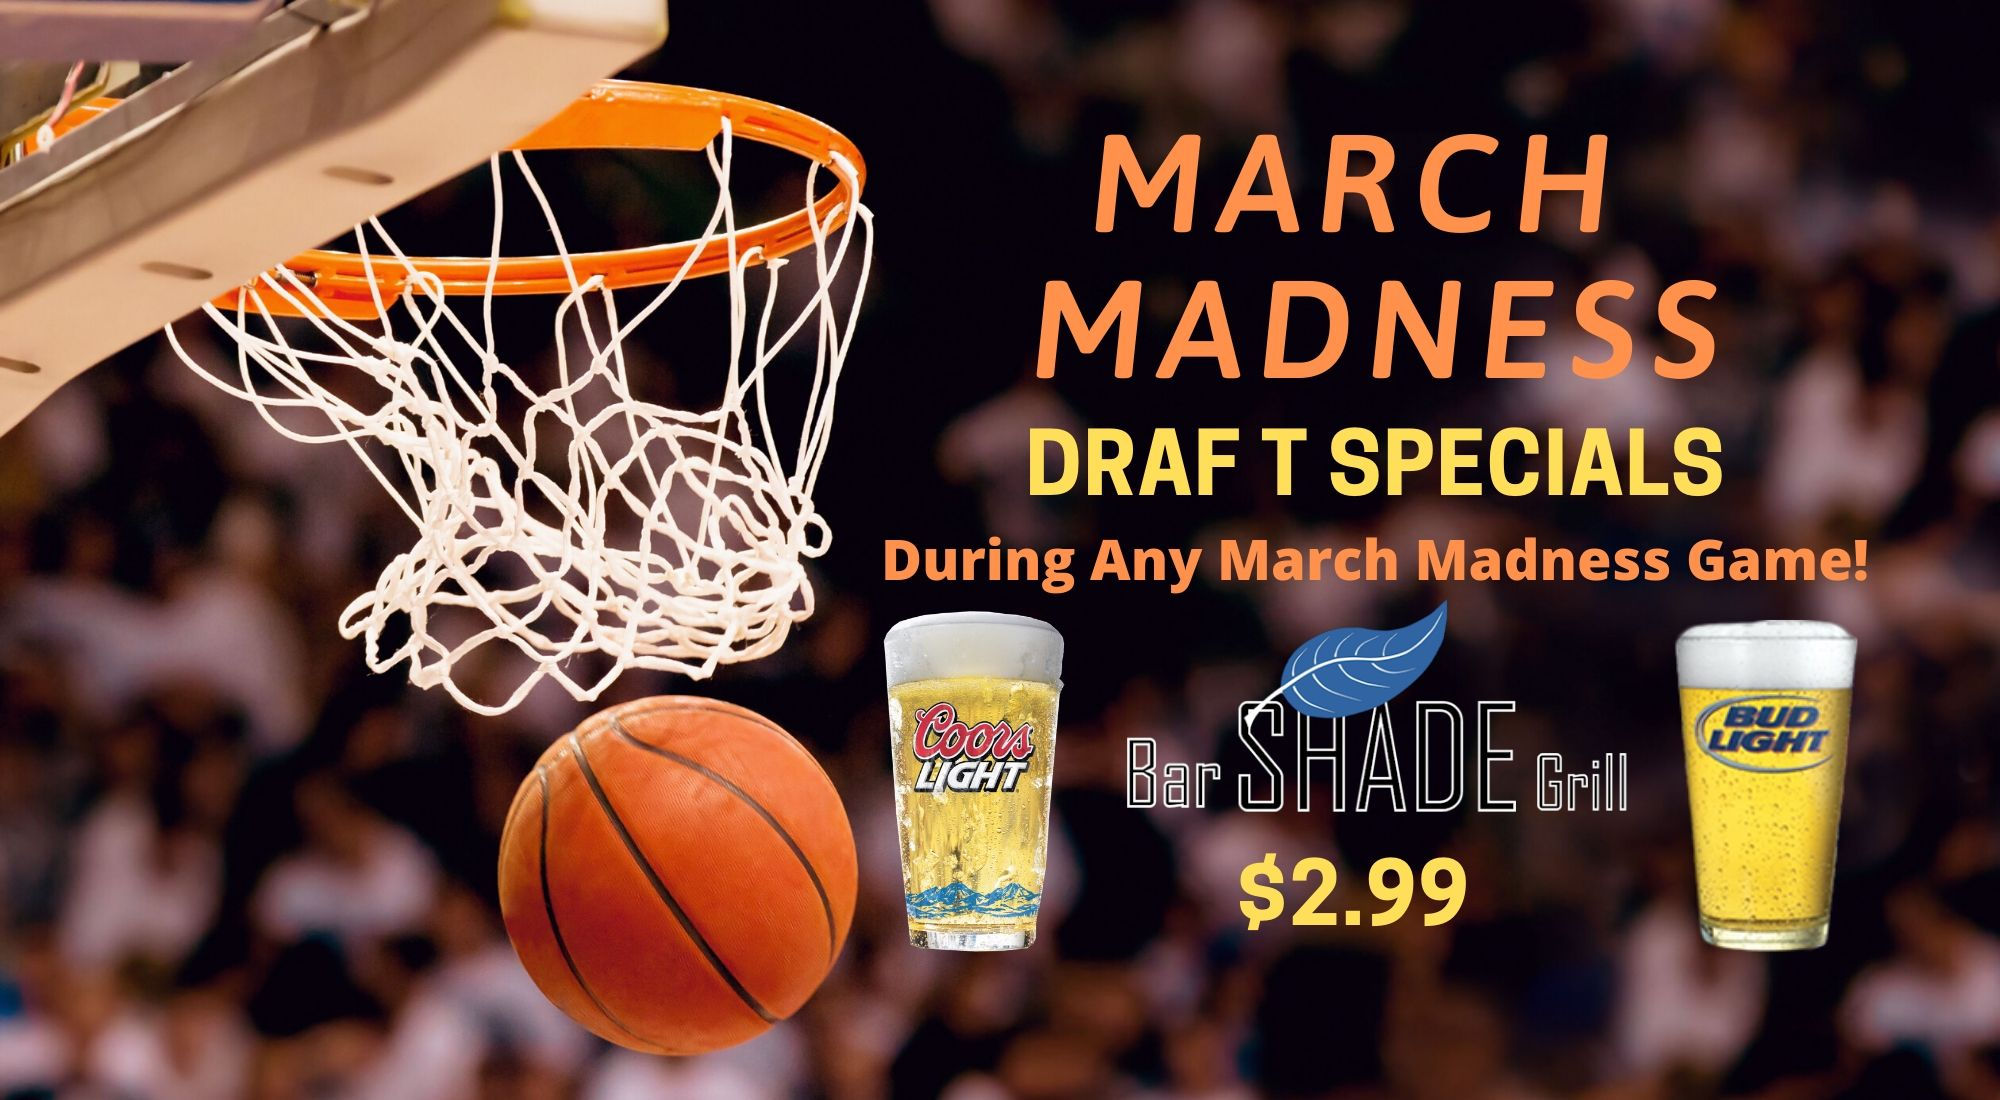 Shade Bar and Grill Windsor Locks CT - Join us For March Madness Specials